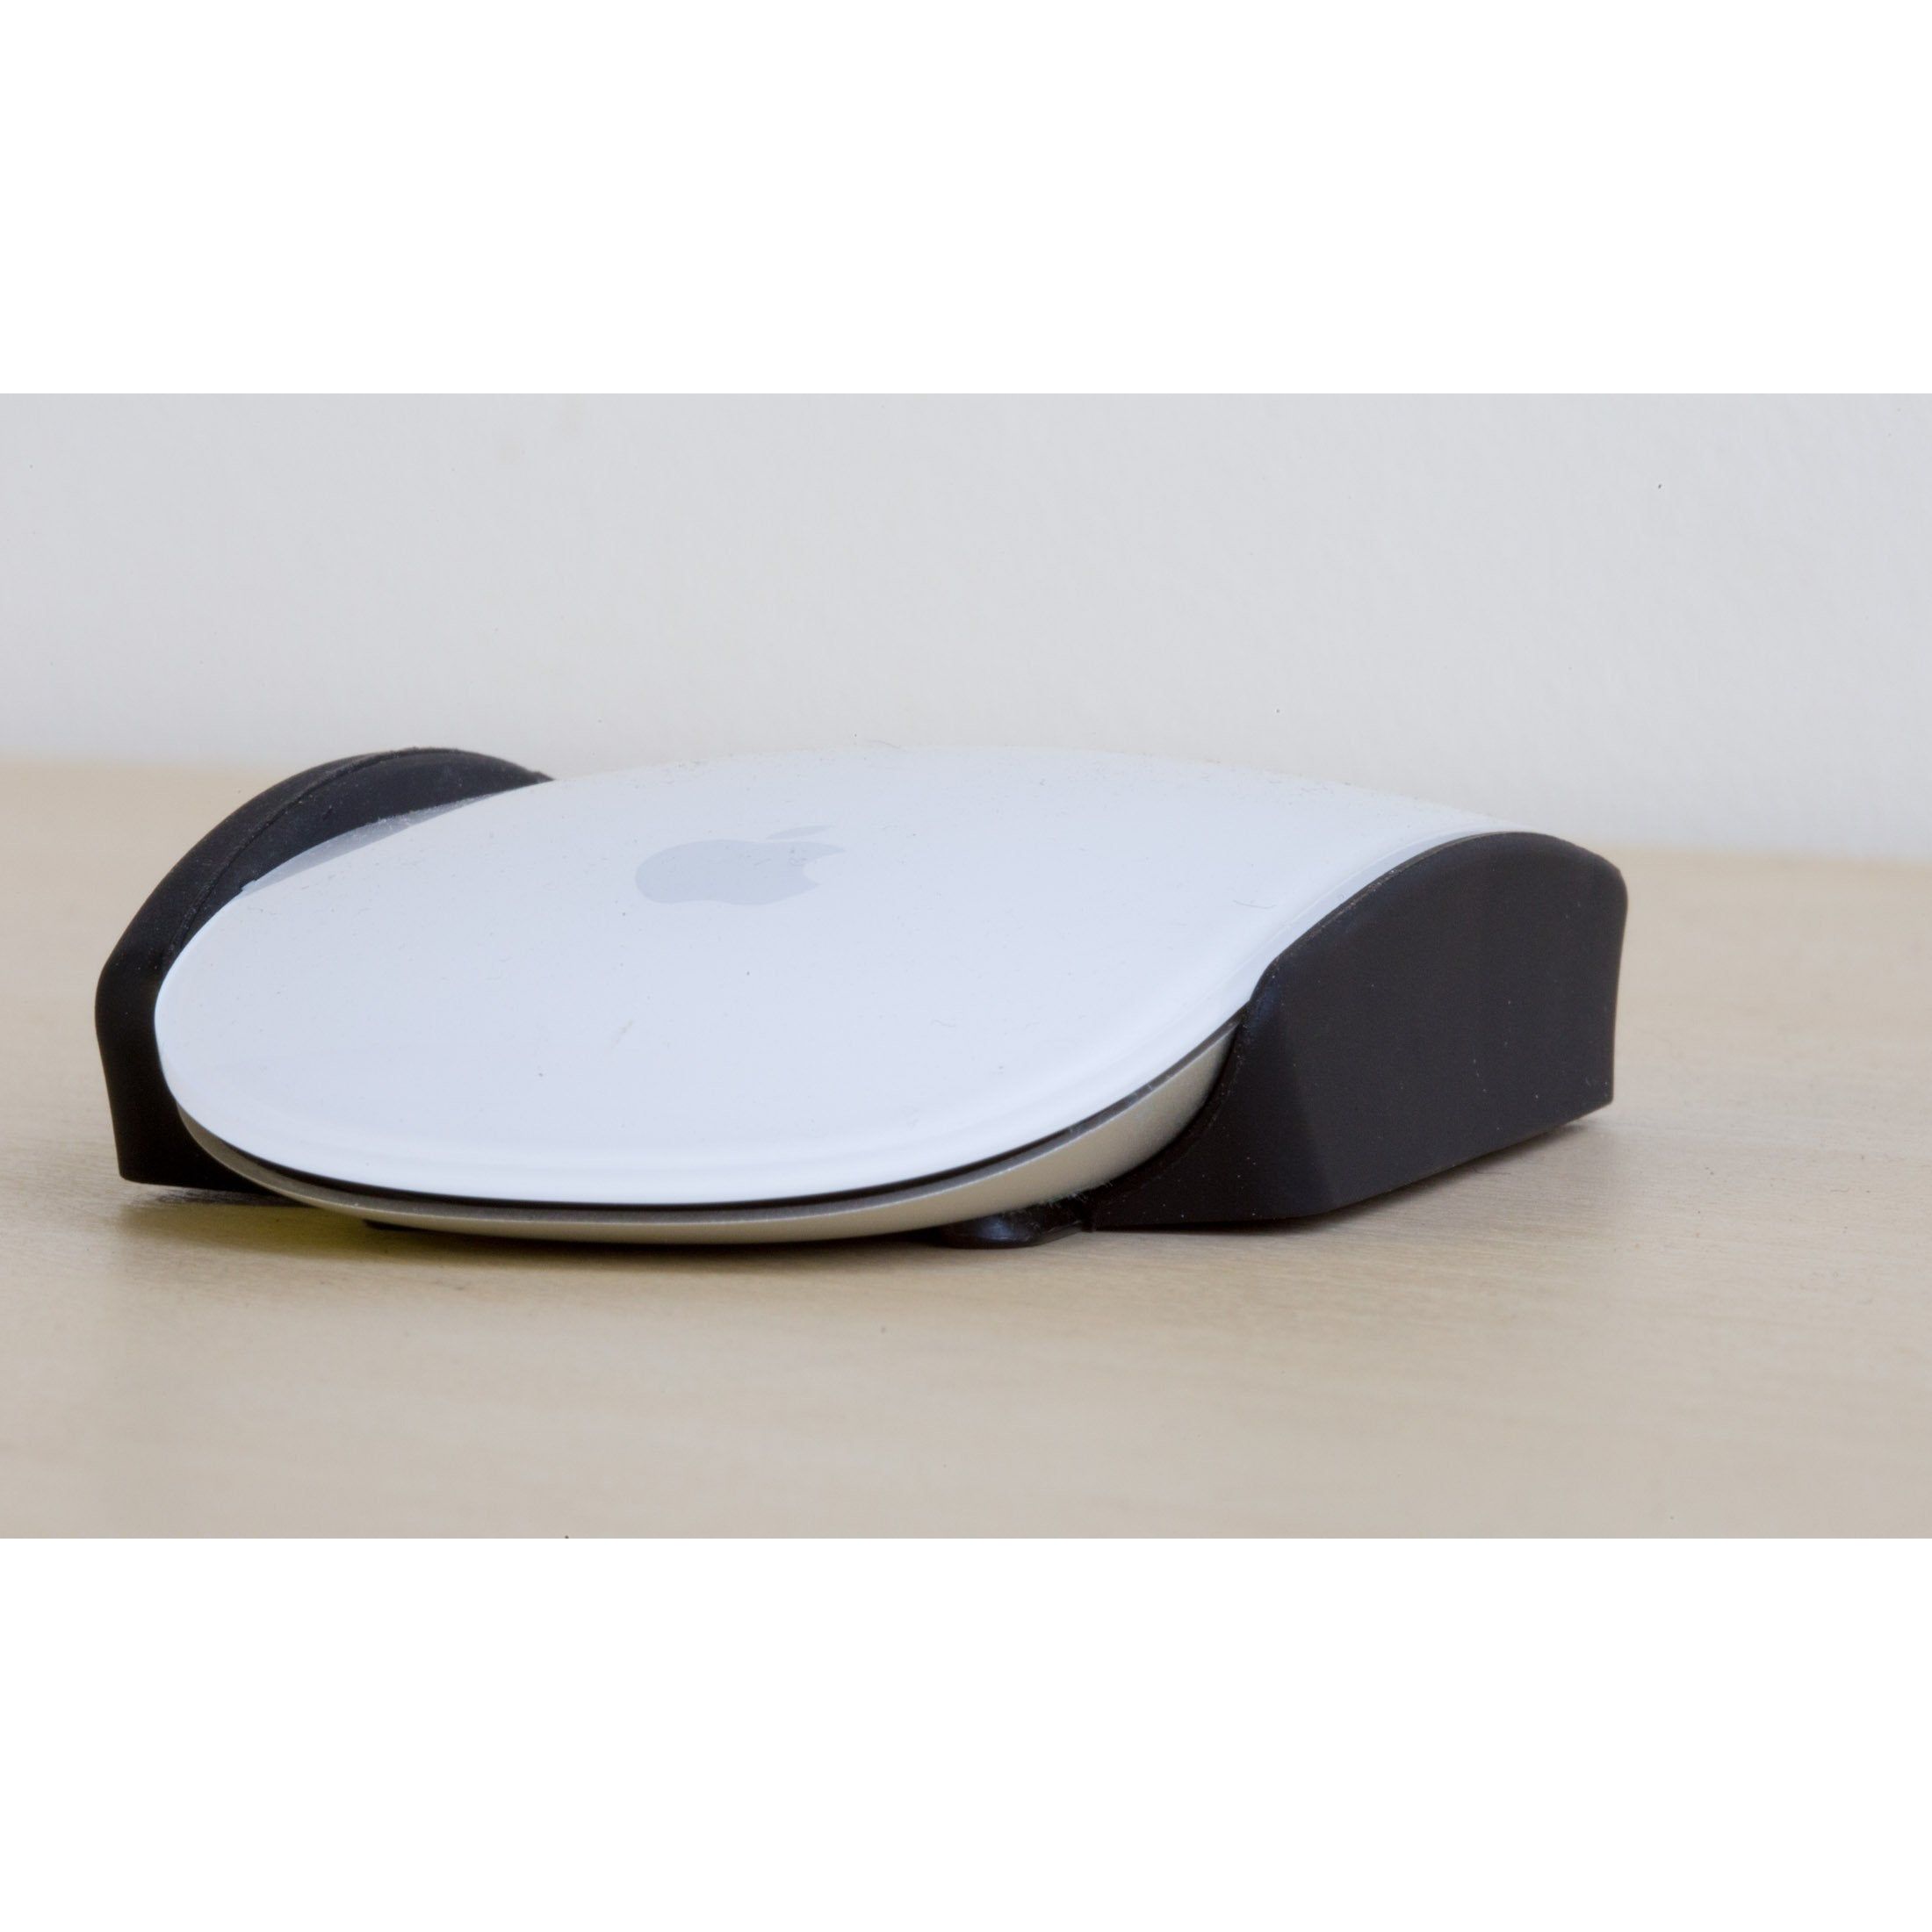 MagicGrips for Magic Mouse